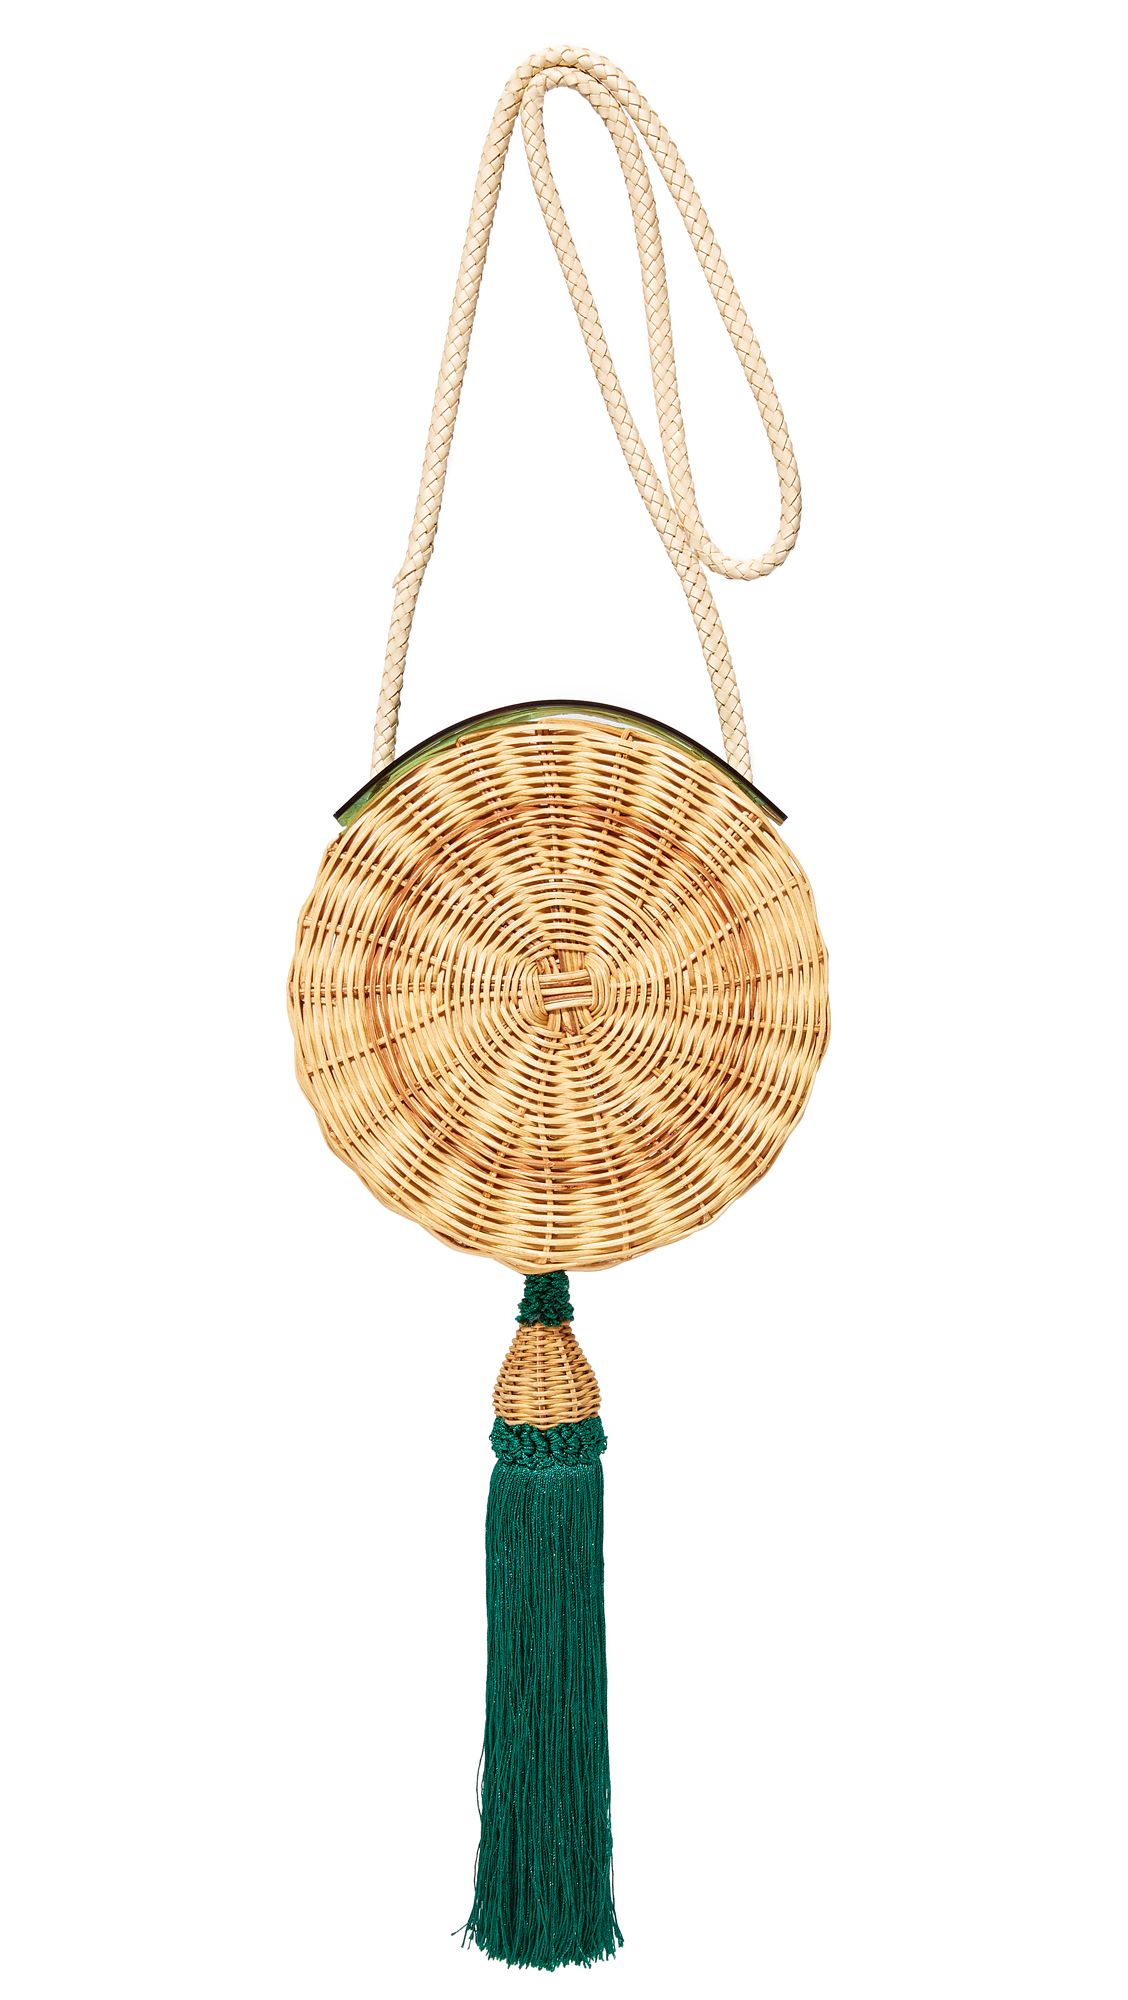 Buy this: An impossibly cute bag for weddings OR weekends by WaiWai